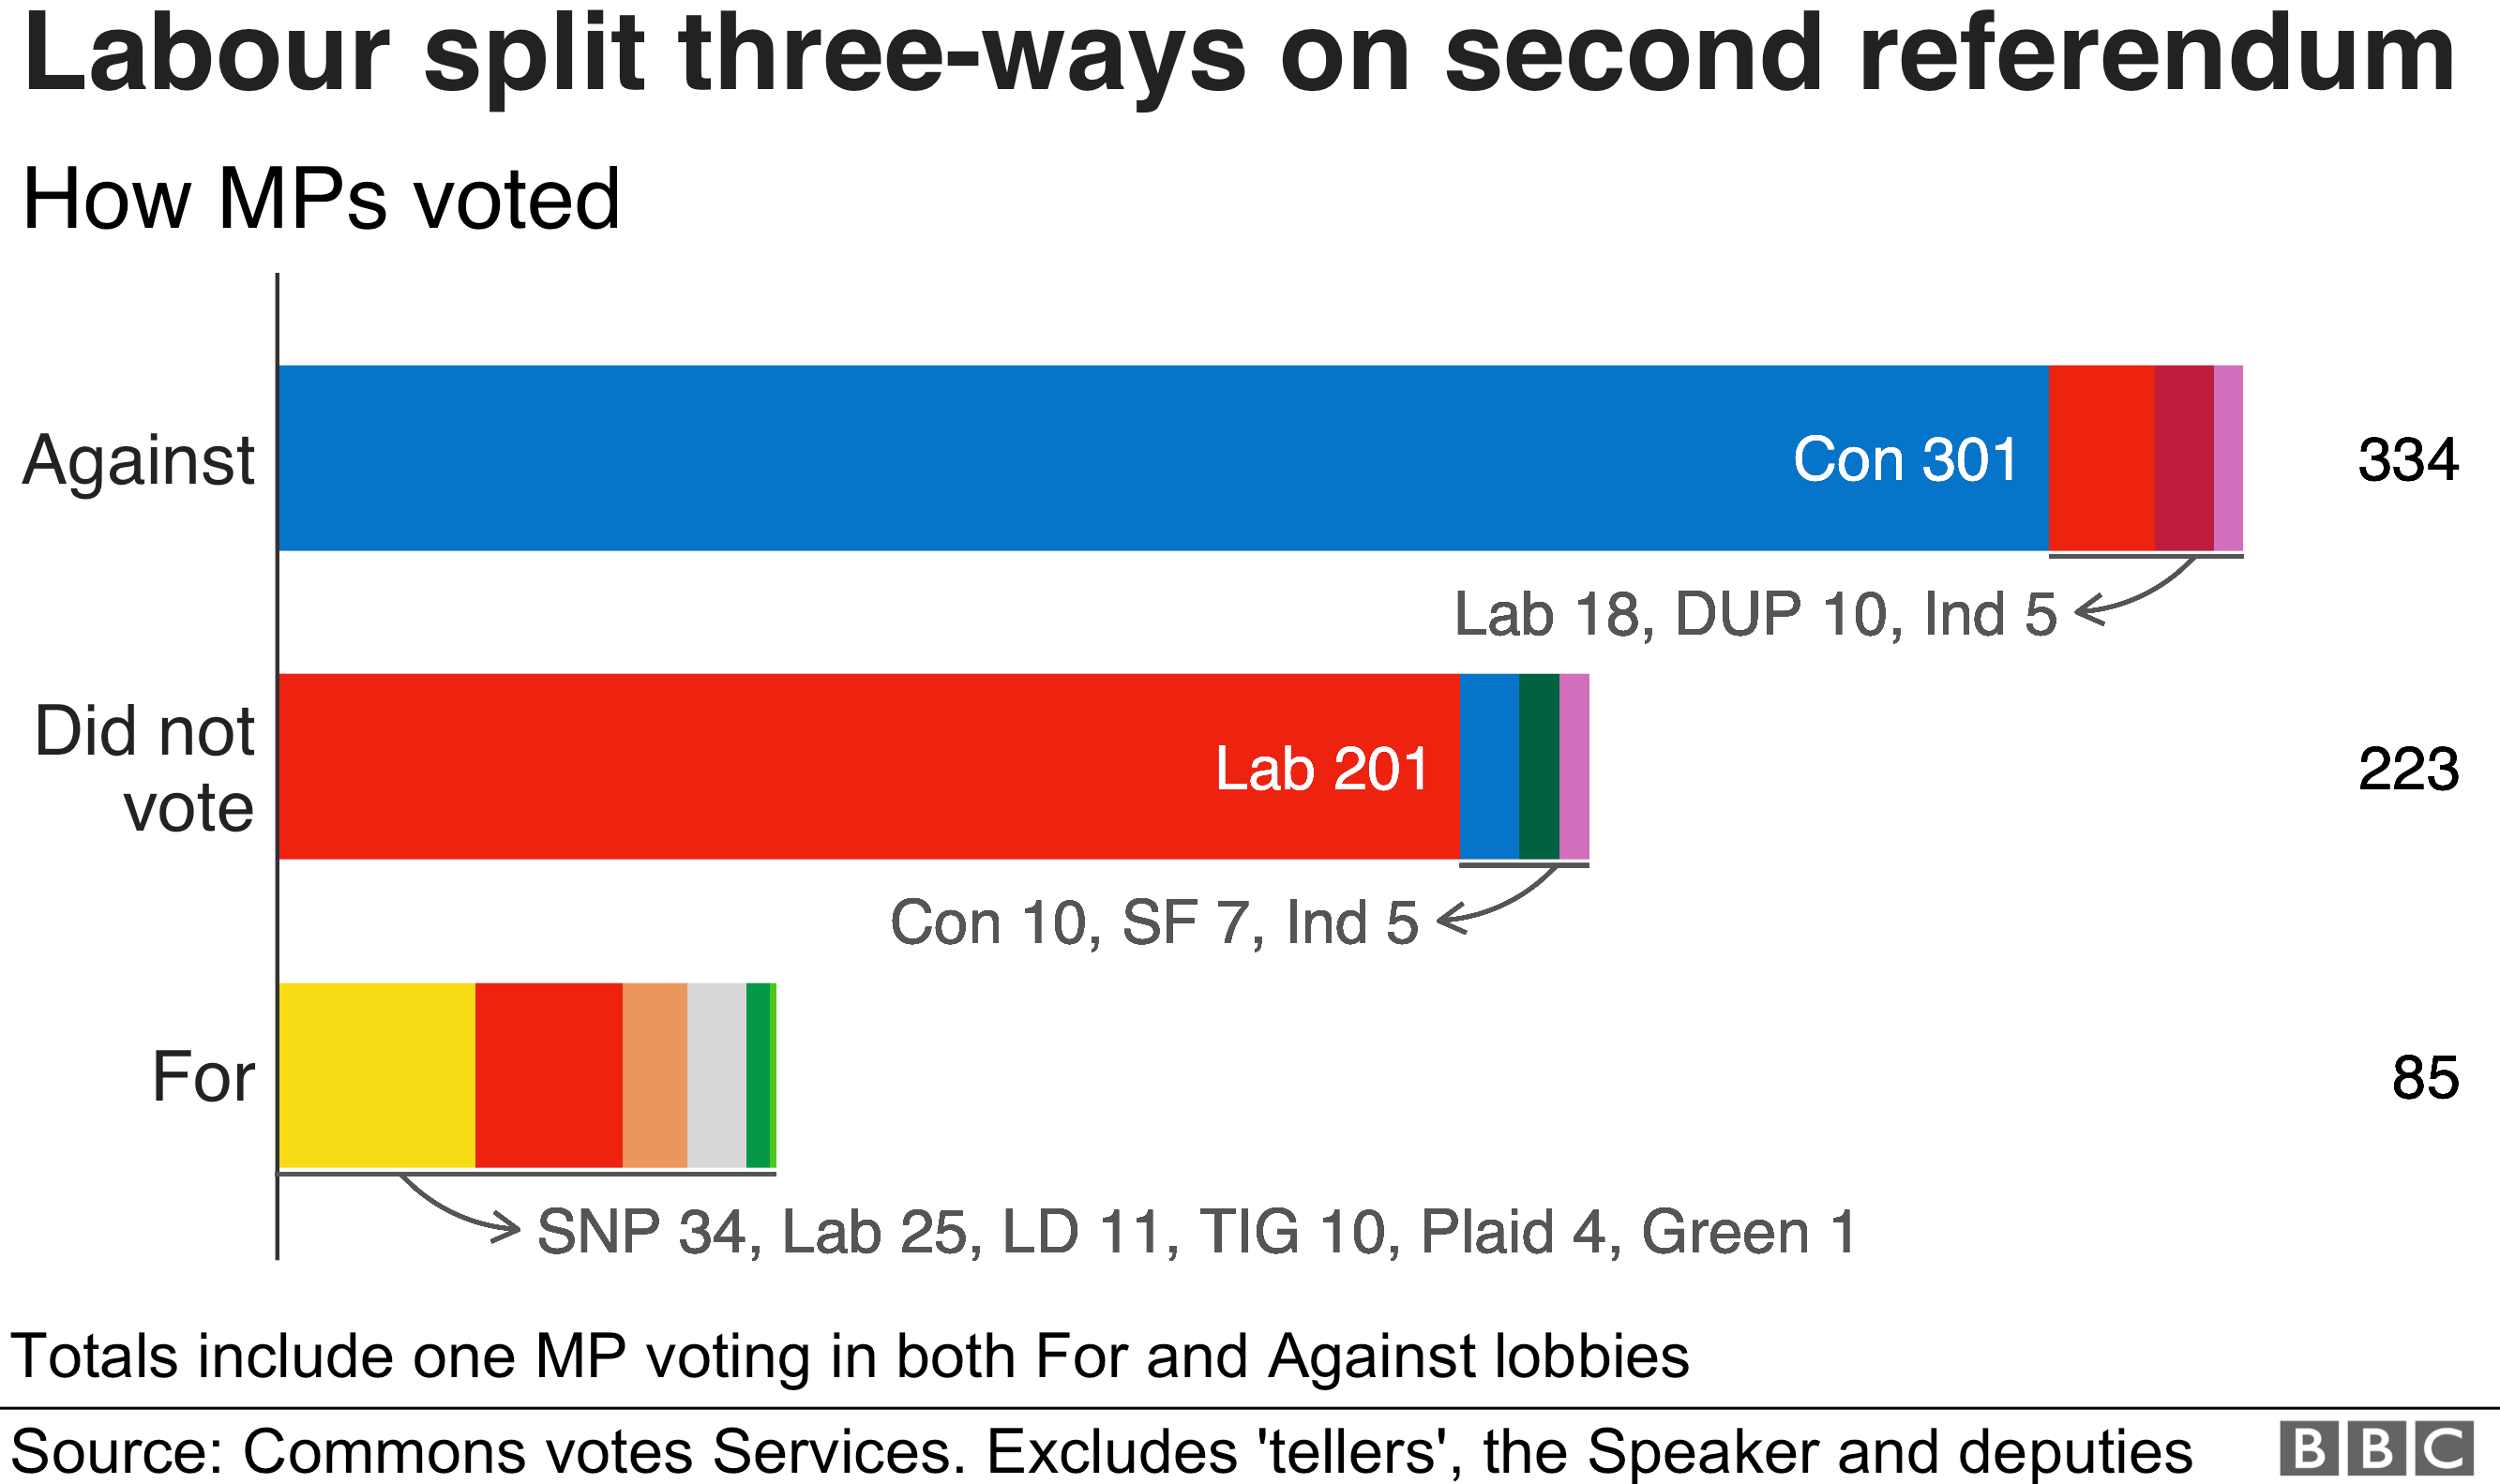 Chart showing how 41 Labour MPs broke the party whip and the Labour Party was split three ways on the second referendum as 18 of their MPs voted against, 201 did not vote and and 25 voted for